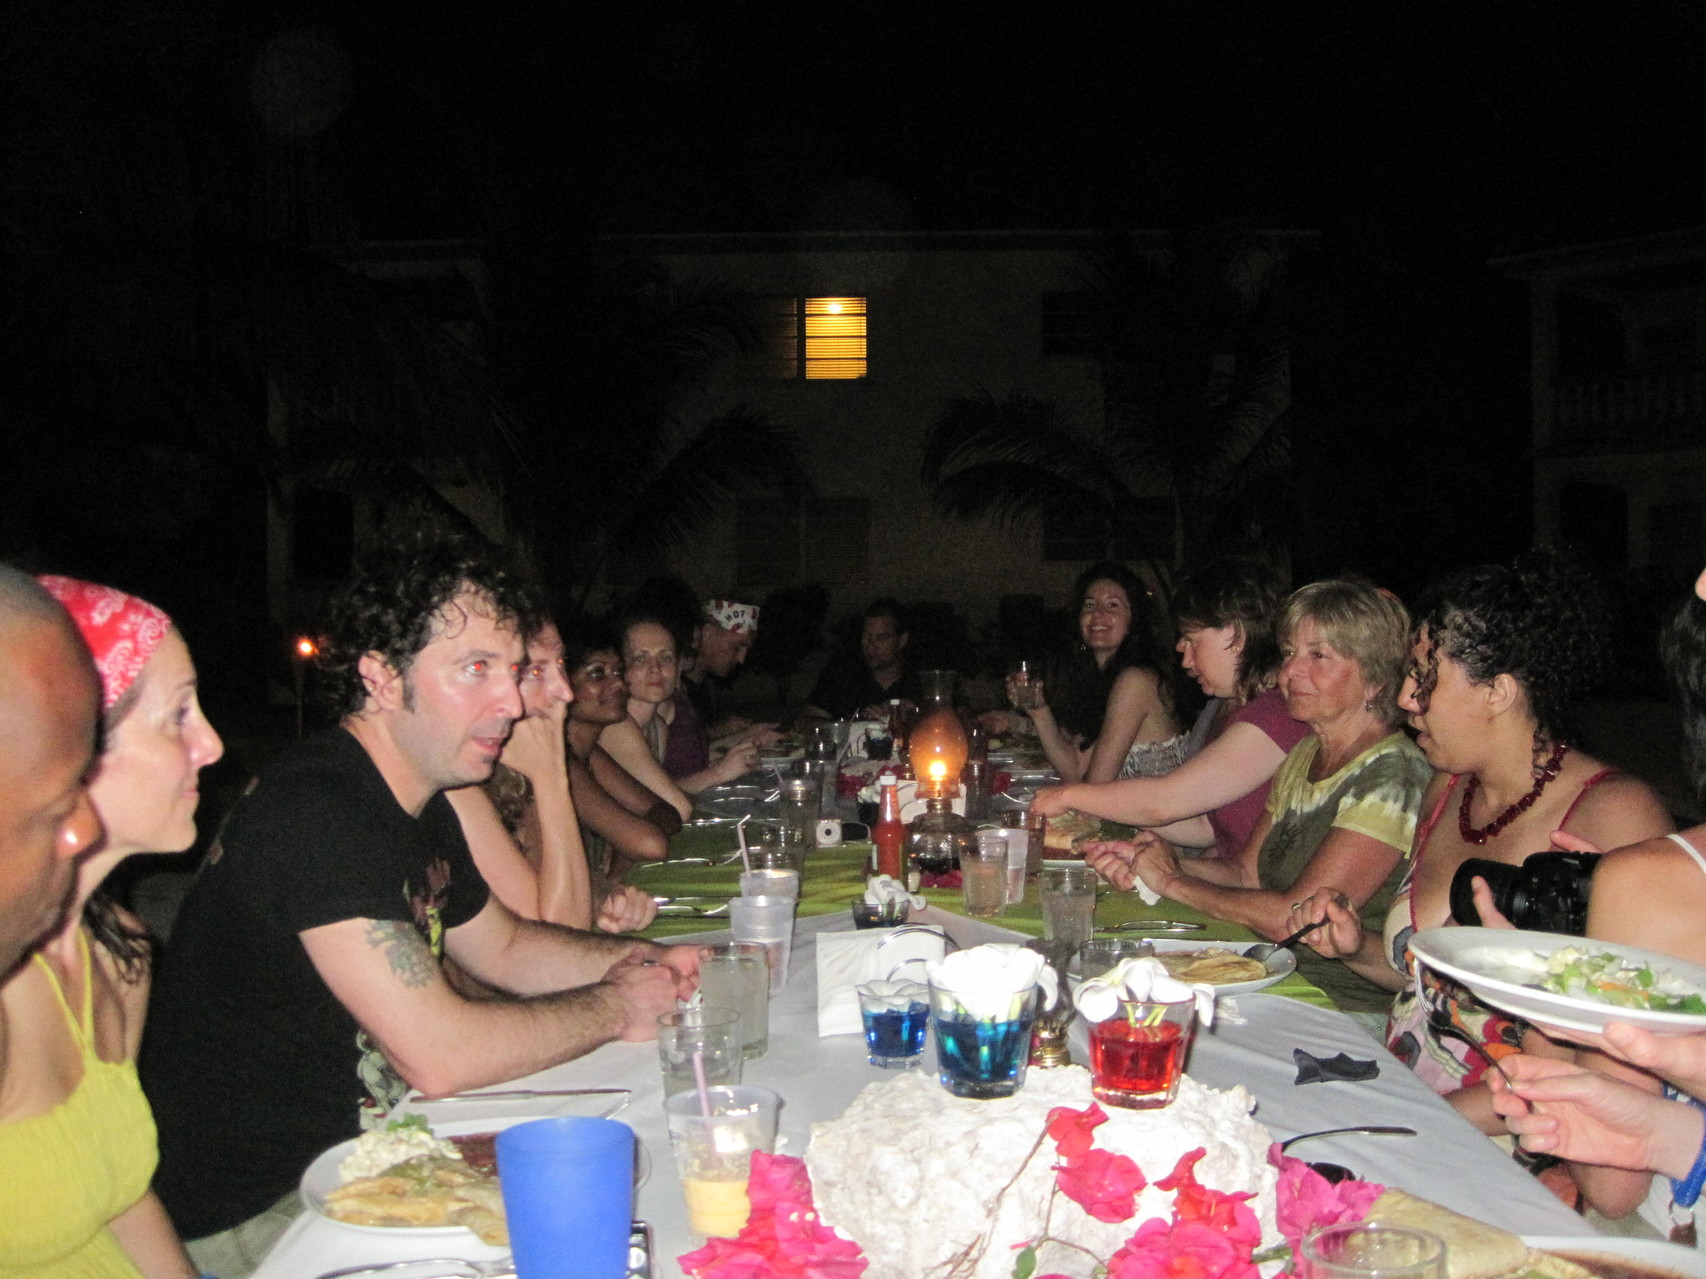 Belizean Shores Resort held one of the dinners on the beach.  What an amazing night it was!